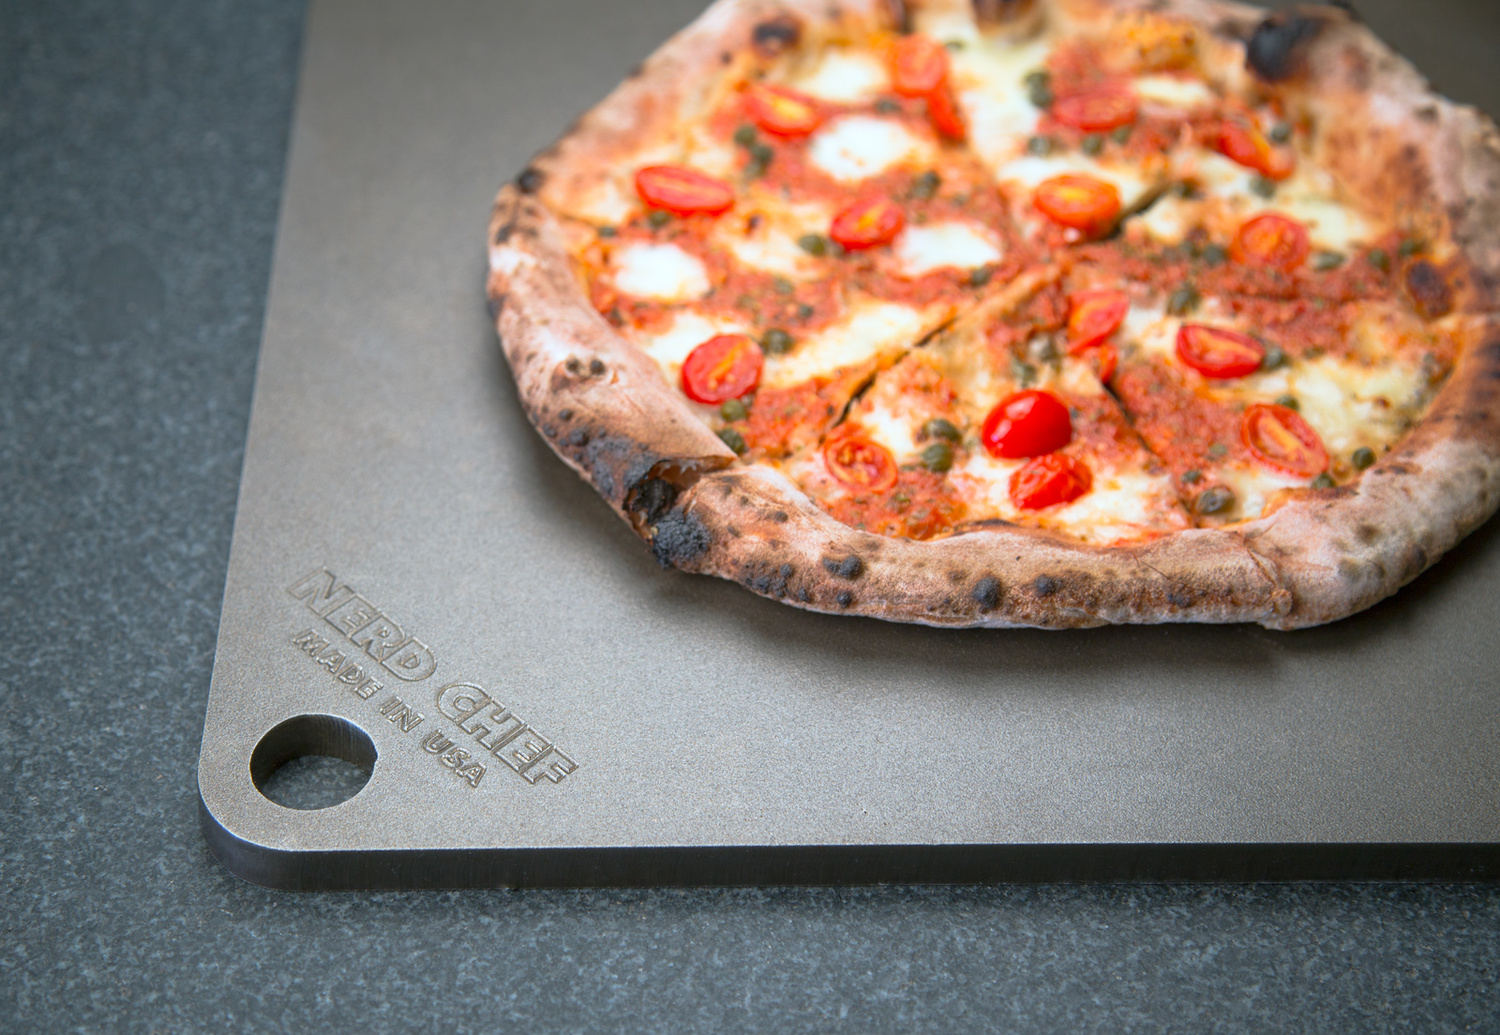 High Performance Baking Steel Stones For Pizza